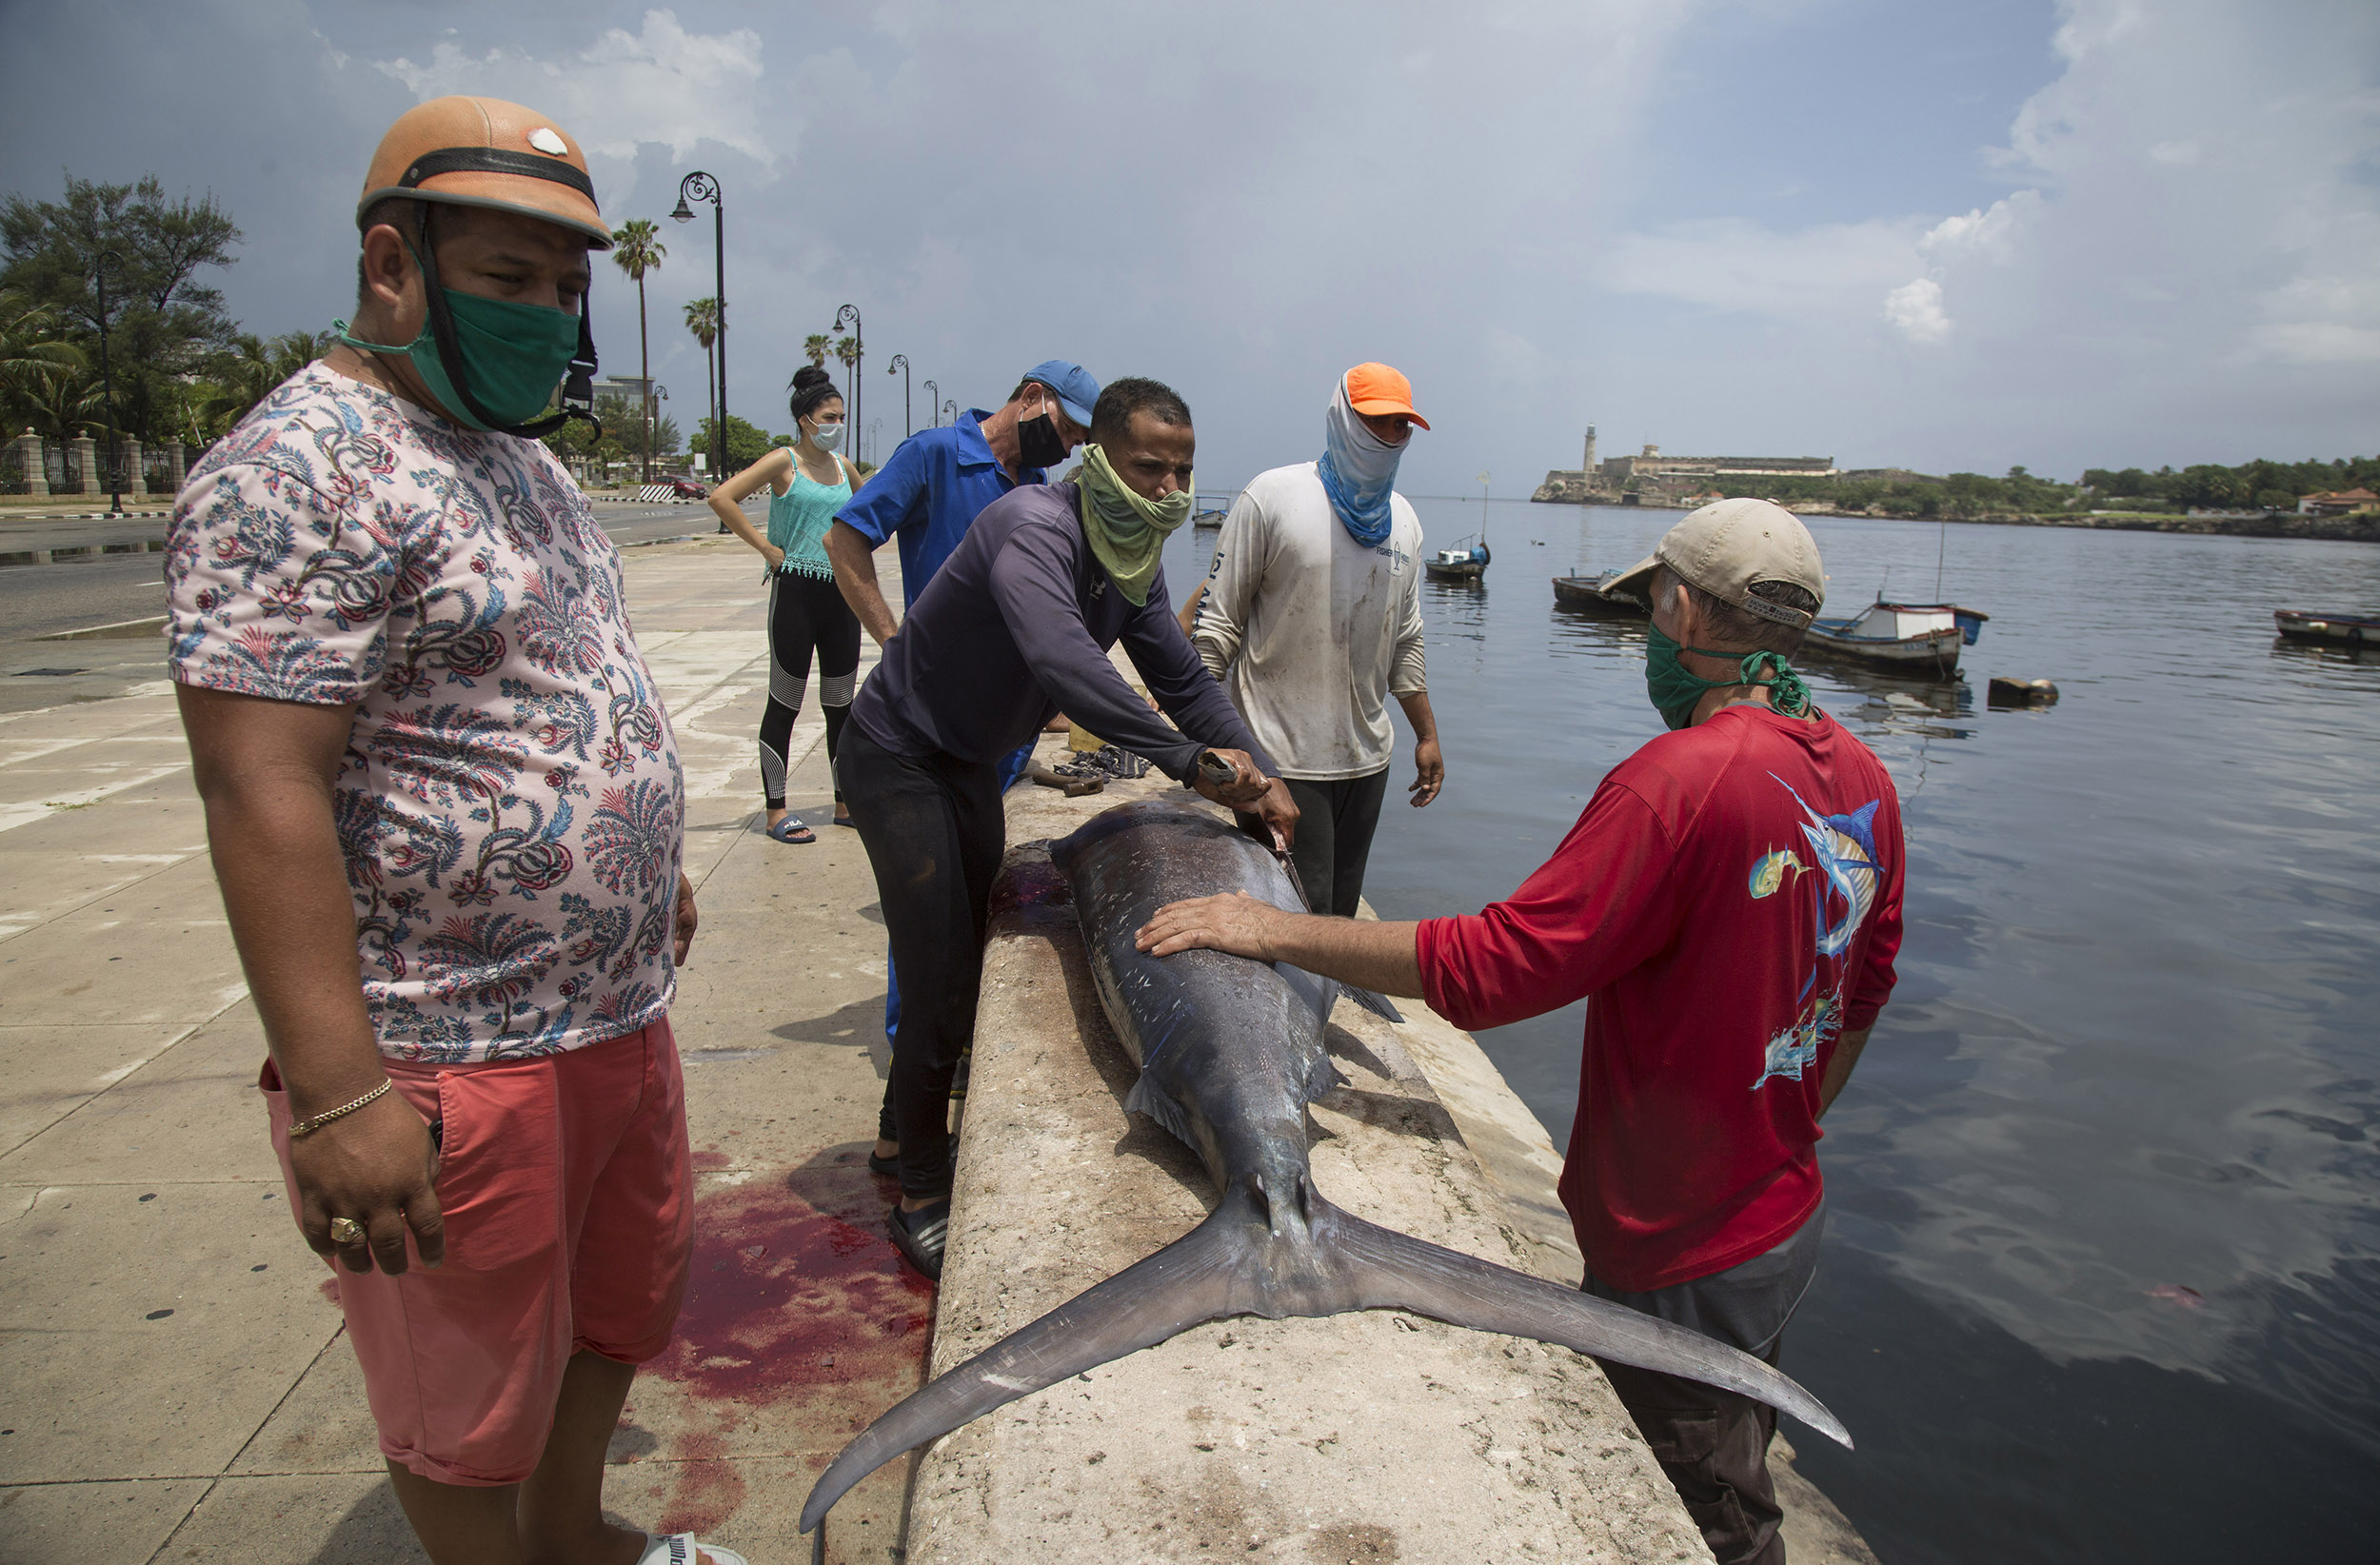 Fishermen wearing protective face masks clean a freshly caught fish while people line up to buy portions of the fish, in Havana, Cuba, on Saturday, June 27.